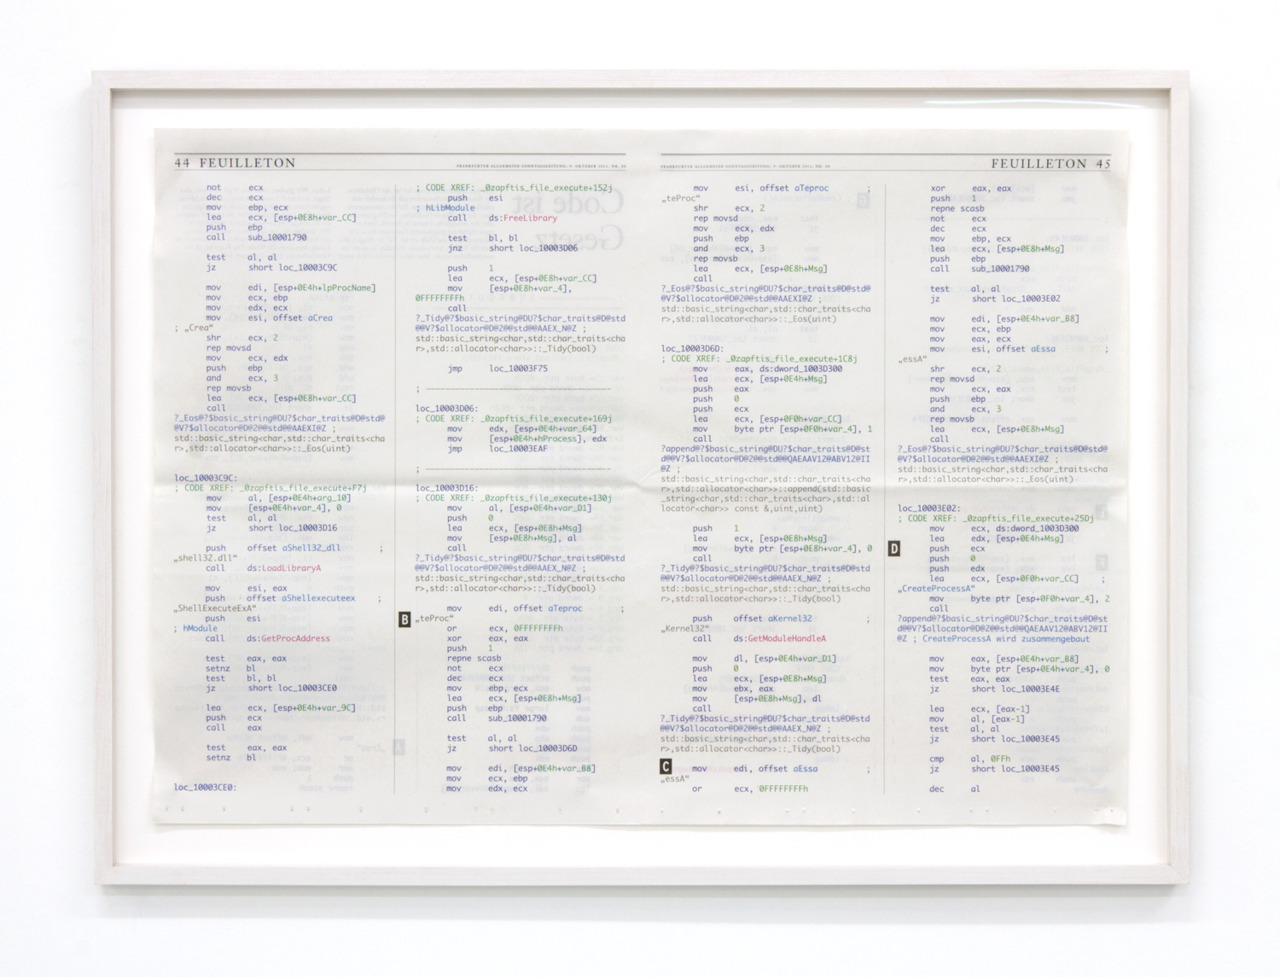 Aram Bartholl, How To Turn Code Into Art, 2011